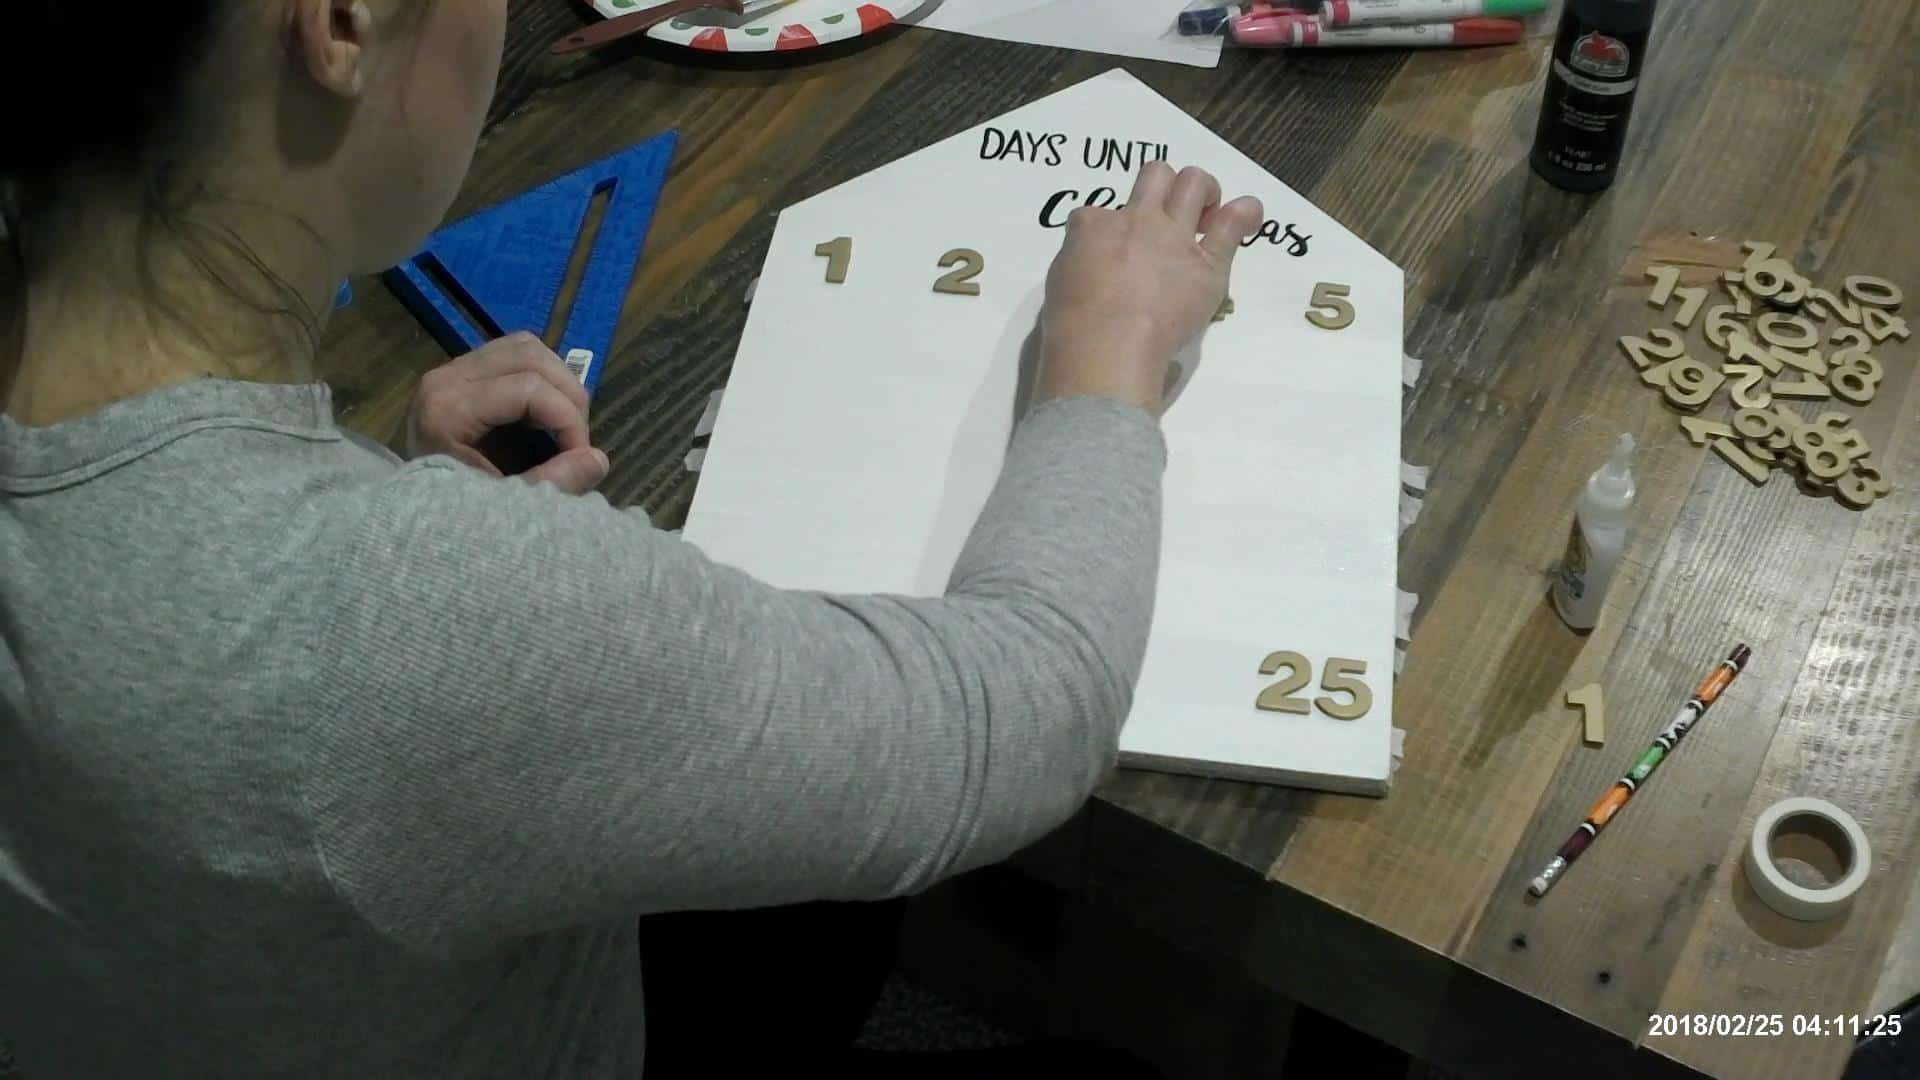 Adding the numbers to the advent calendar board